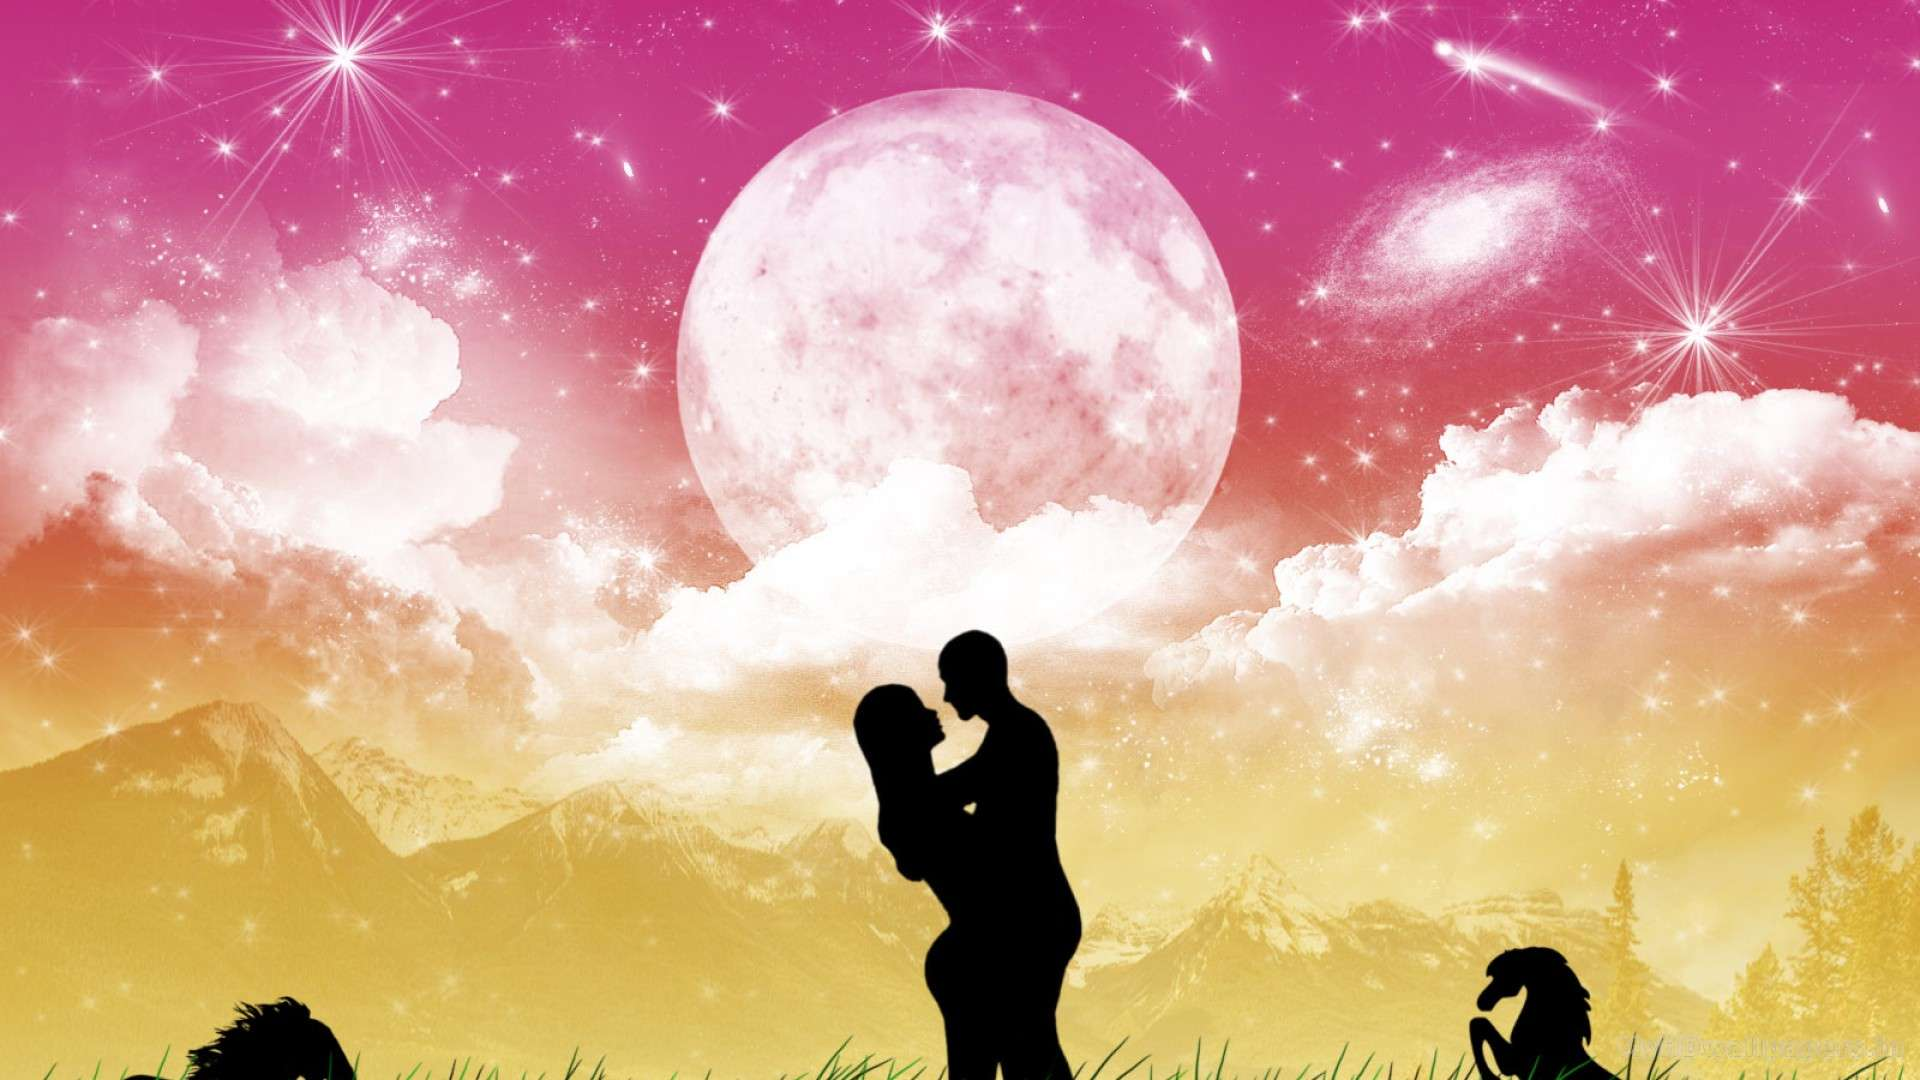 Cute Couple Emo Wallpapers Love To The Stars Hd Wallpapers